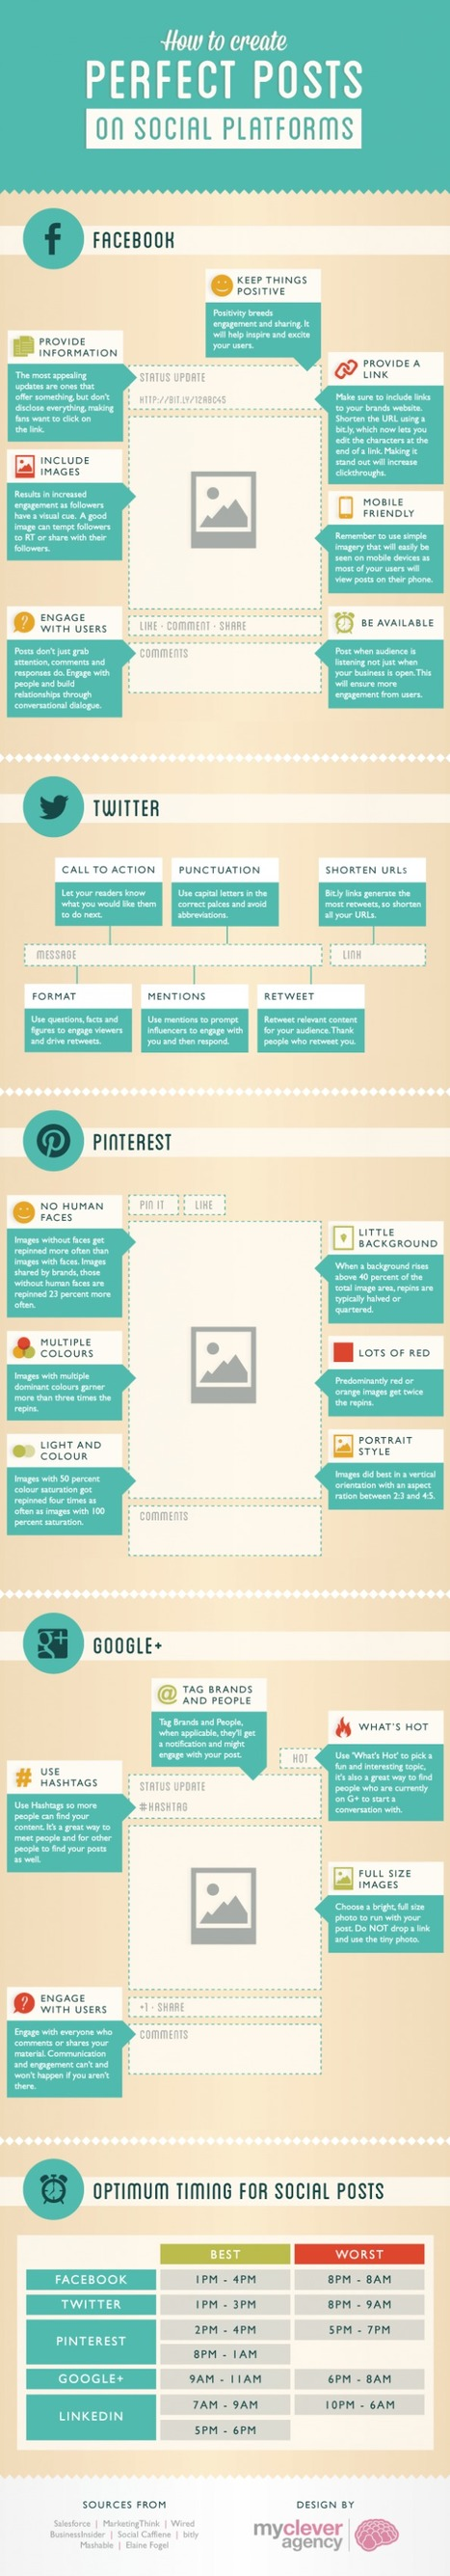 How To Create The Perfect Pinterest, Google+, Facebook & Twitter Posts | mycleveragency | The MarTech Digest | Scoop.it